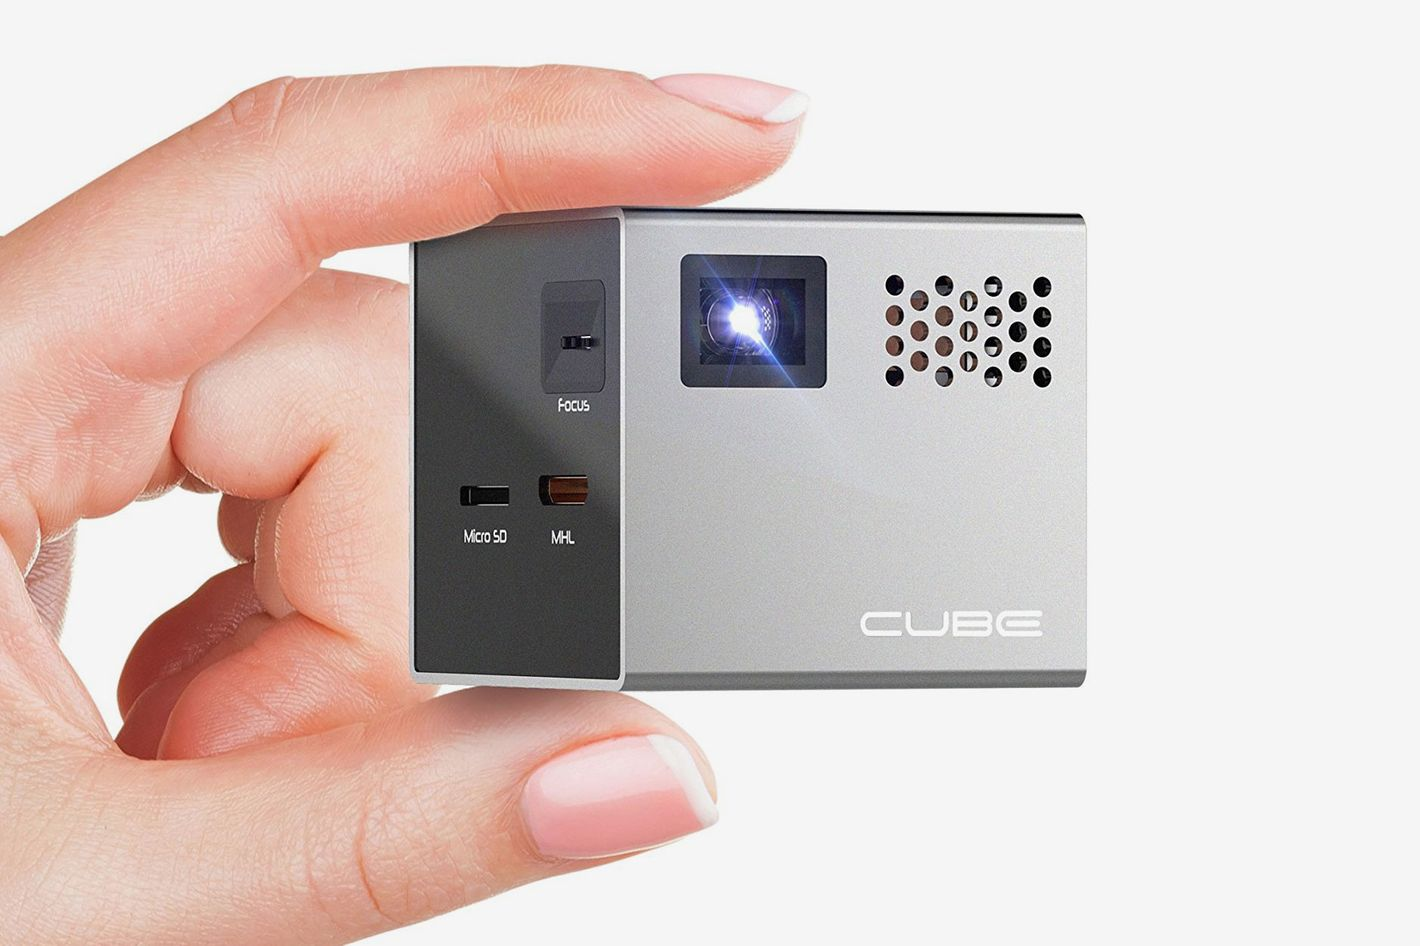 RIF6 CUBE Mobile Pico Projector — Portable Mini 2 inch Video Projector With Built In Speakers